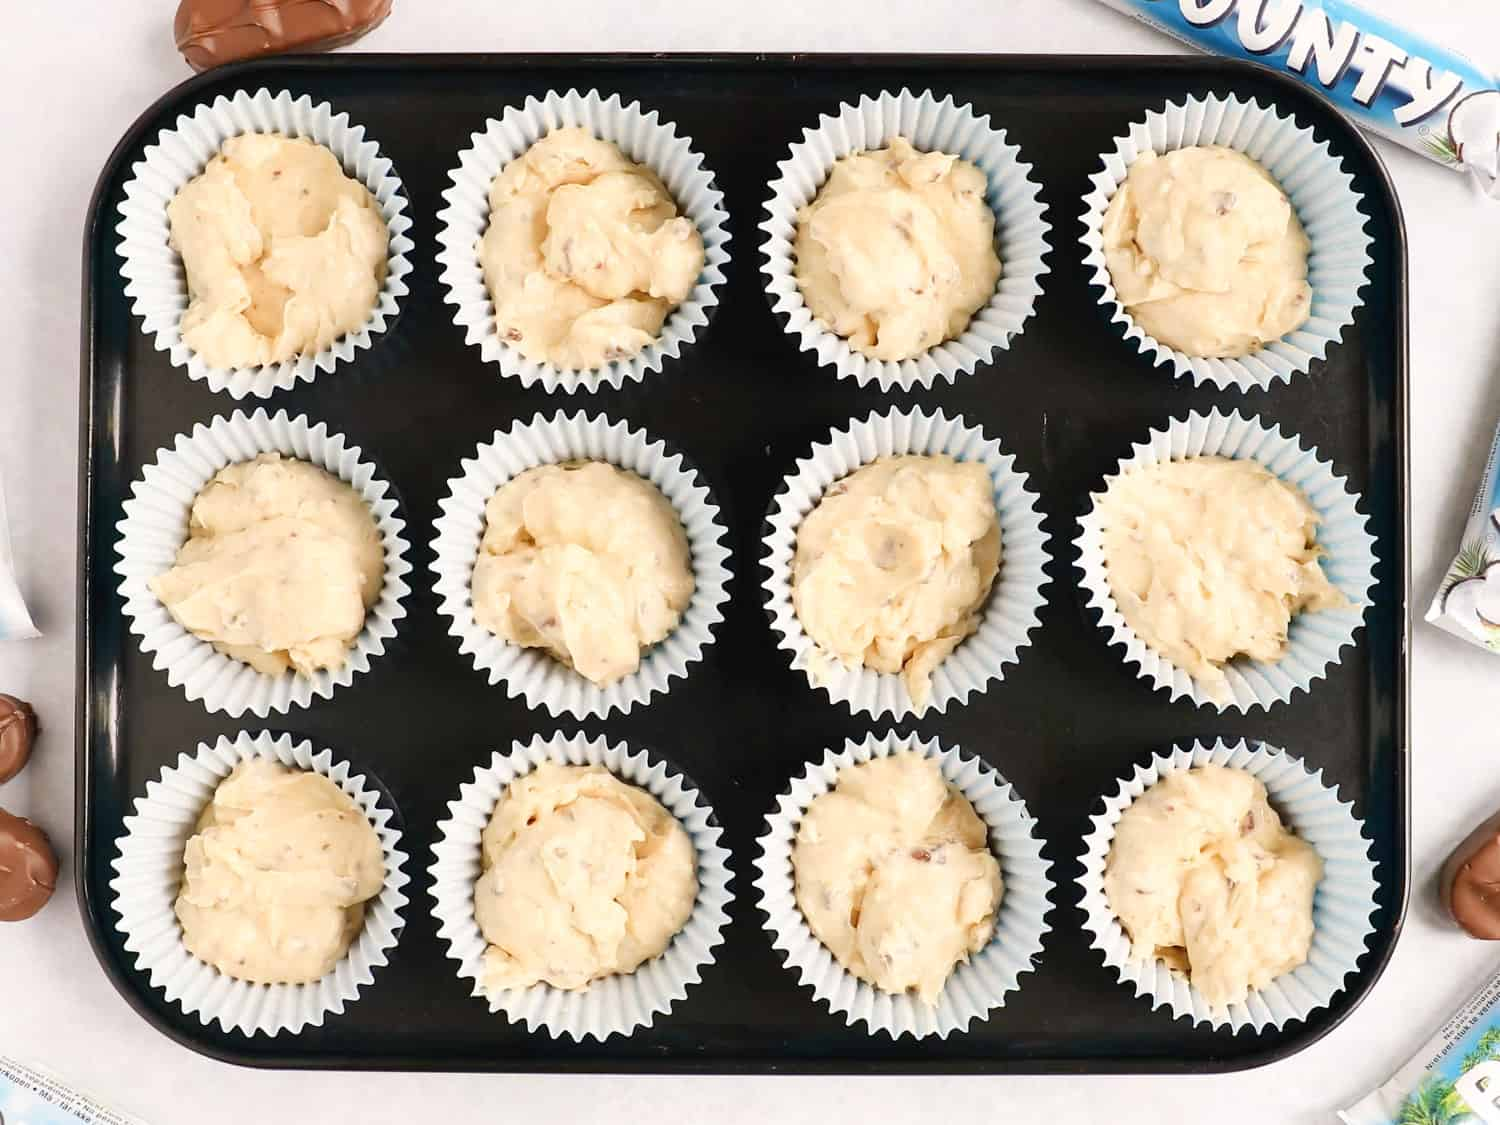 A baking tray filled with 12 cupcake cases containing cupcake batter